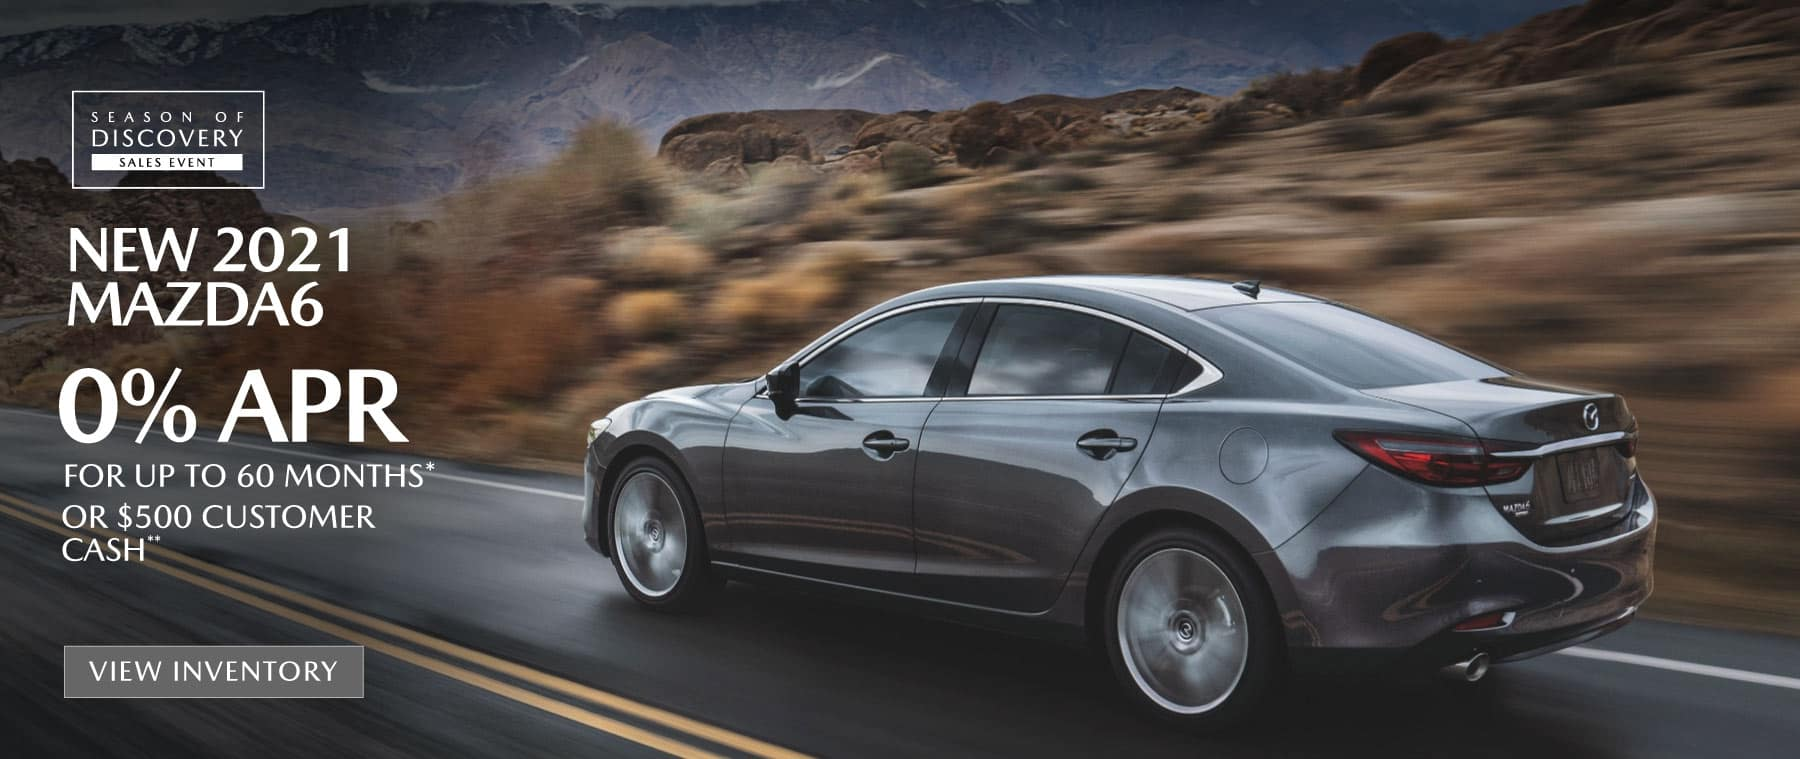 2021 Mazda6   0% APR for up to 60 months   View Inventory